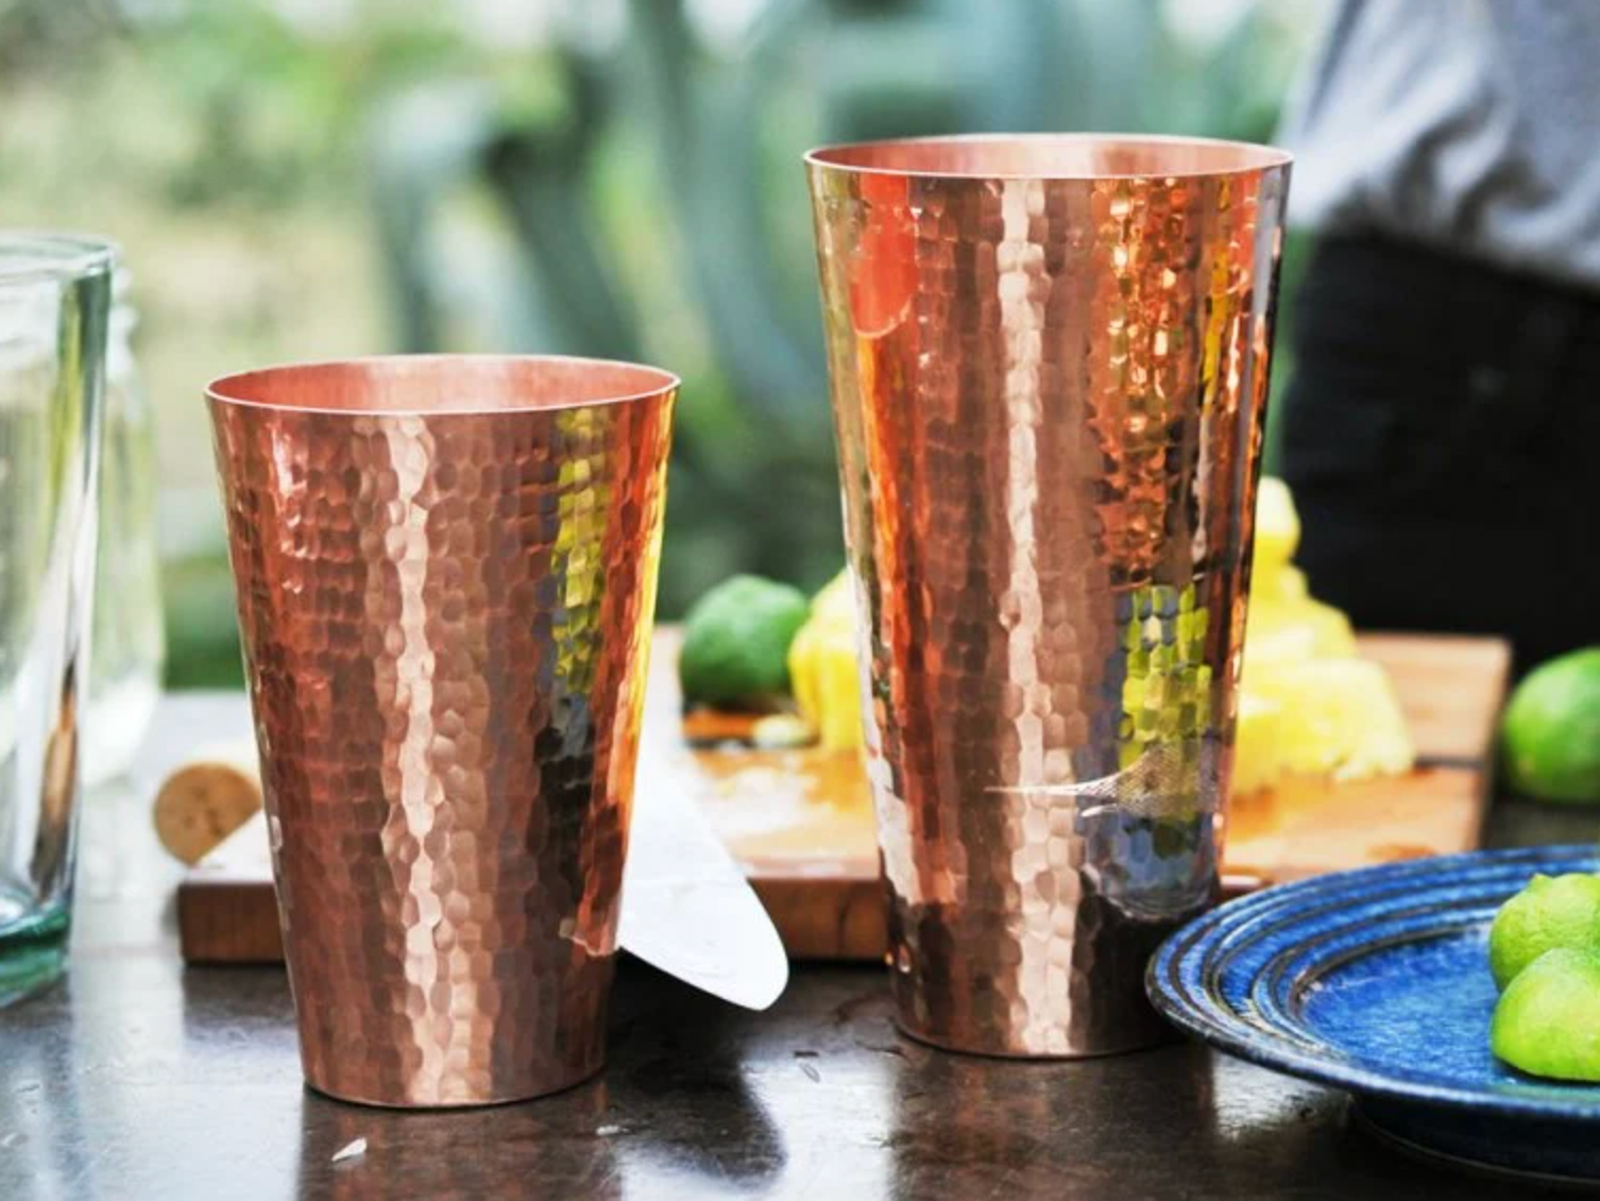 This gorgeous Boston shaker set includes one 30-ounce cup and one 18-ounce cup, made of 100 percent recycled copper. Hand-wash them right after you're done making drinks and be sure to dry well. $90 at thegrommet.com or $94 at food52.com